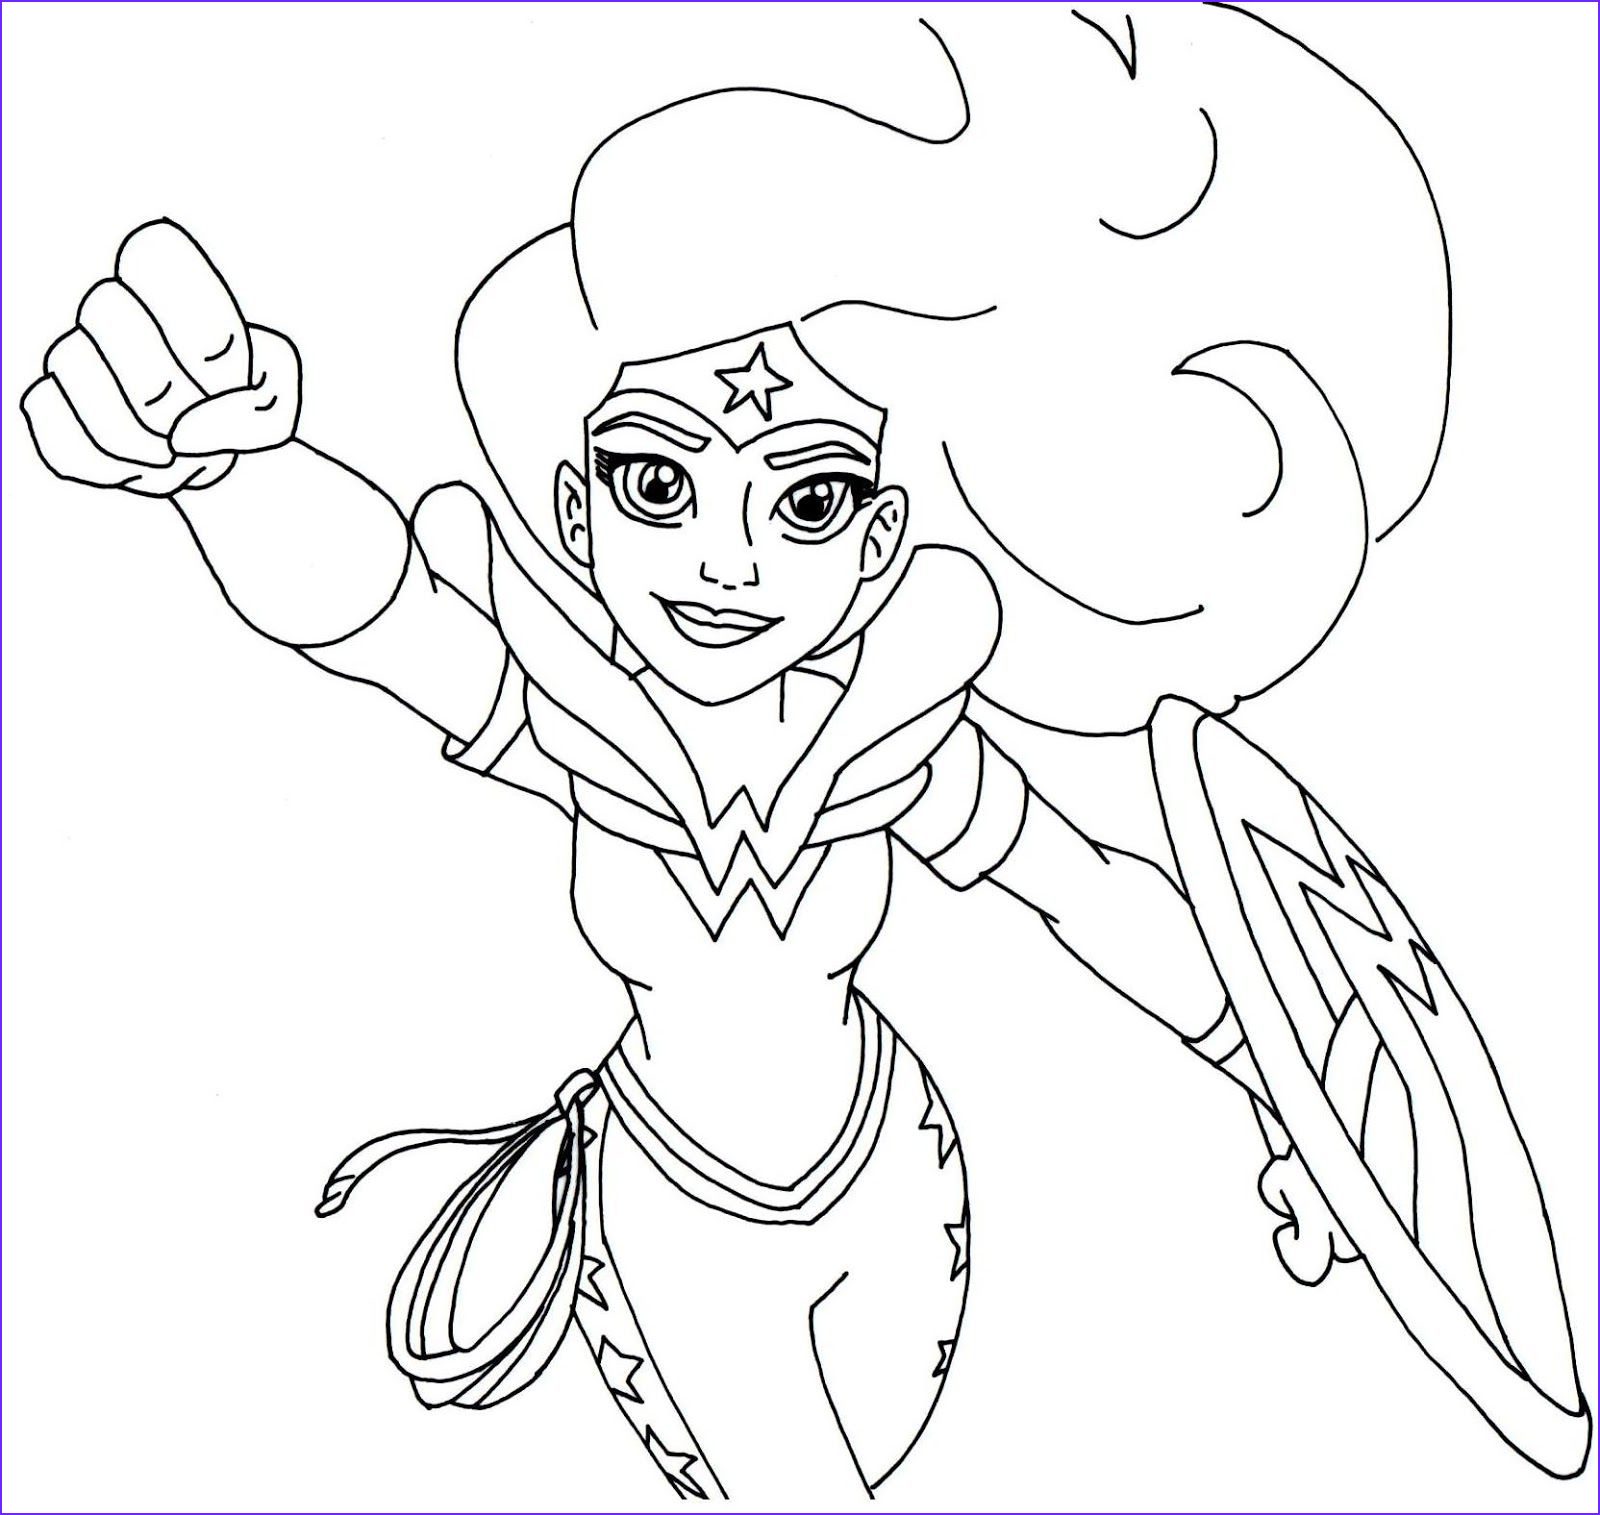 Super Heroes Coloring Books Unique Photos Free Printable Super Hero High Coloring Page for Wonder